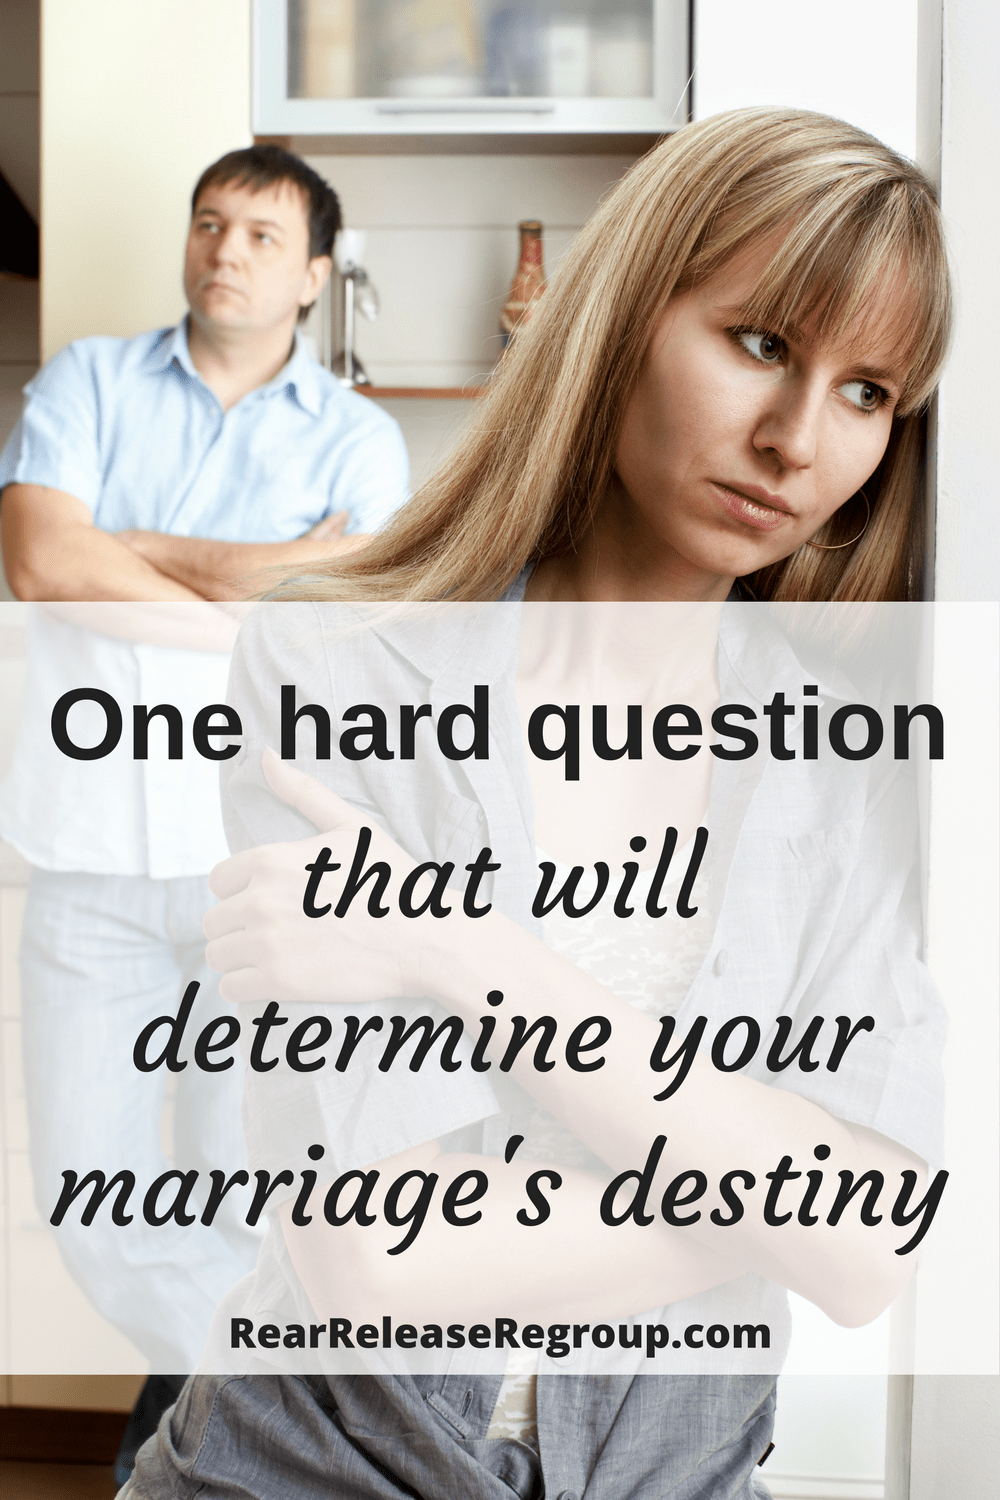 One hard question that will determine your marriage's destiny. How my marriage survived due to the answer to the divorce question.